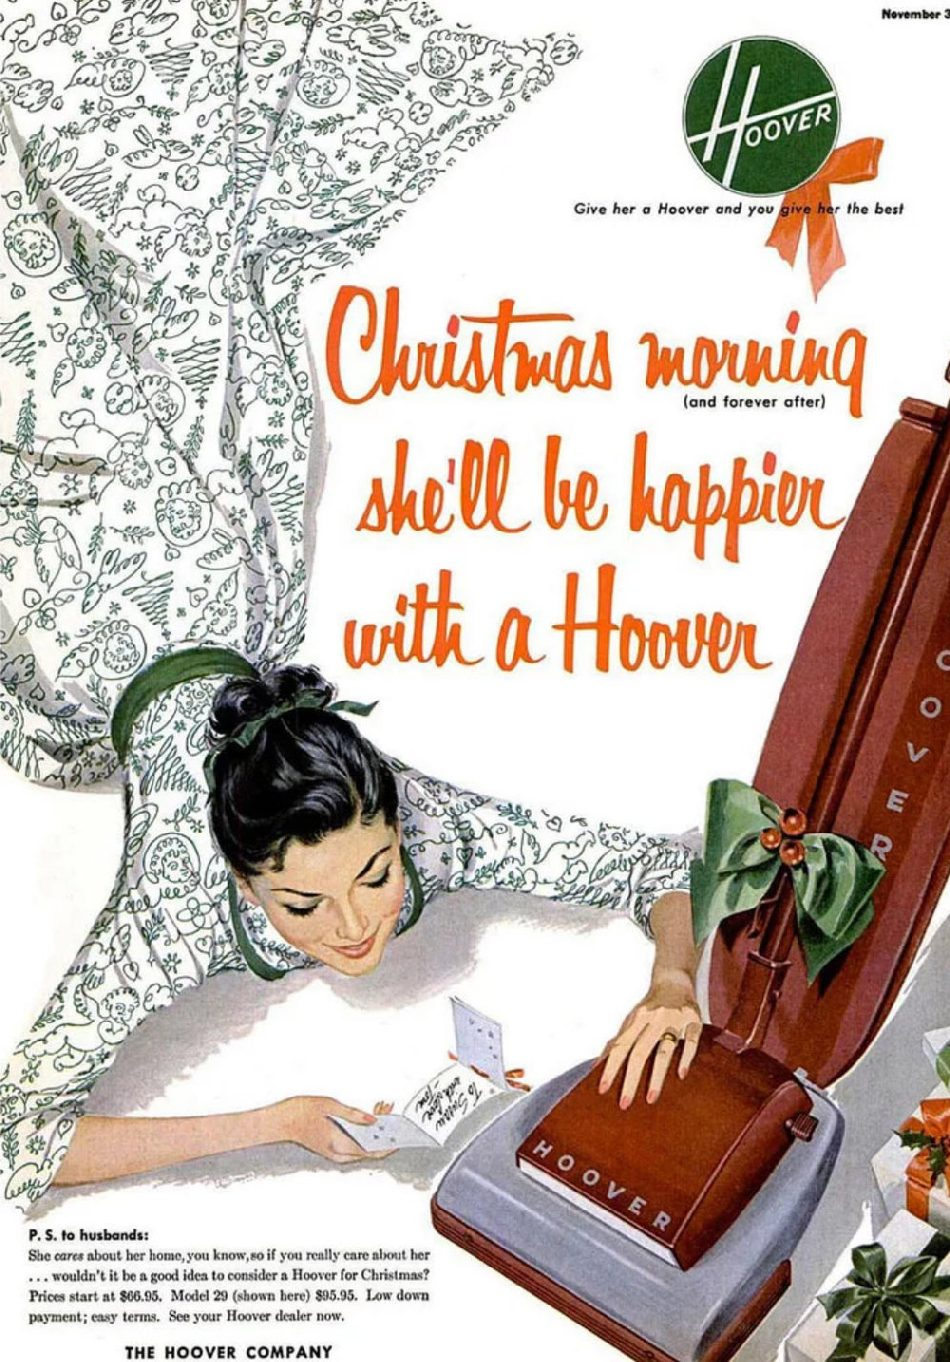 Christmas morning she'll be happier married to the Hoover.